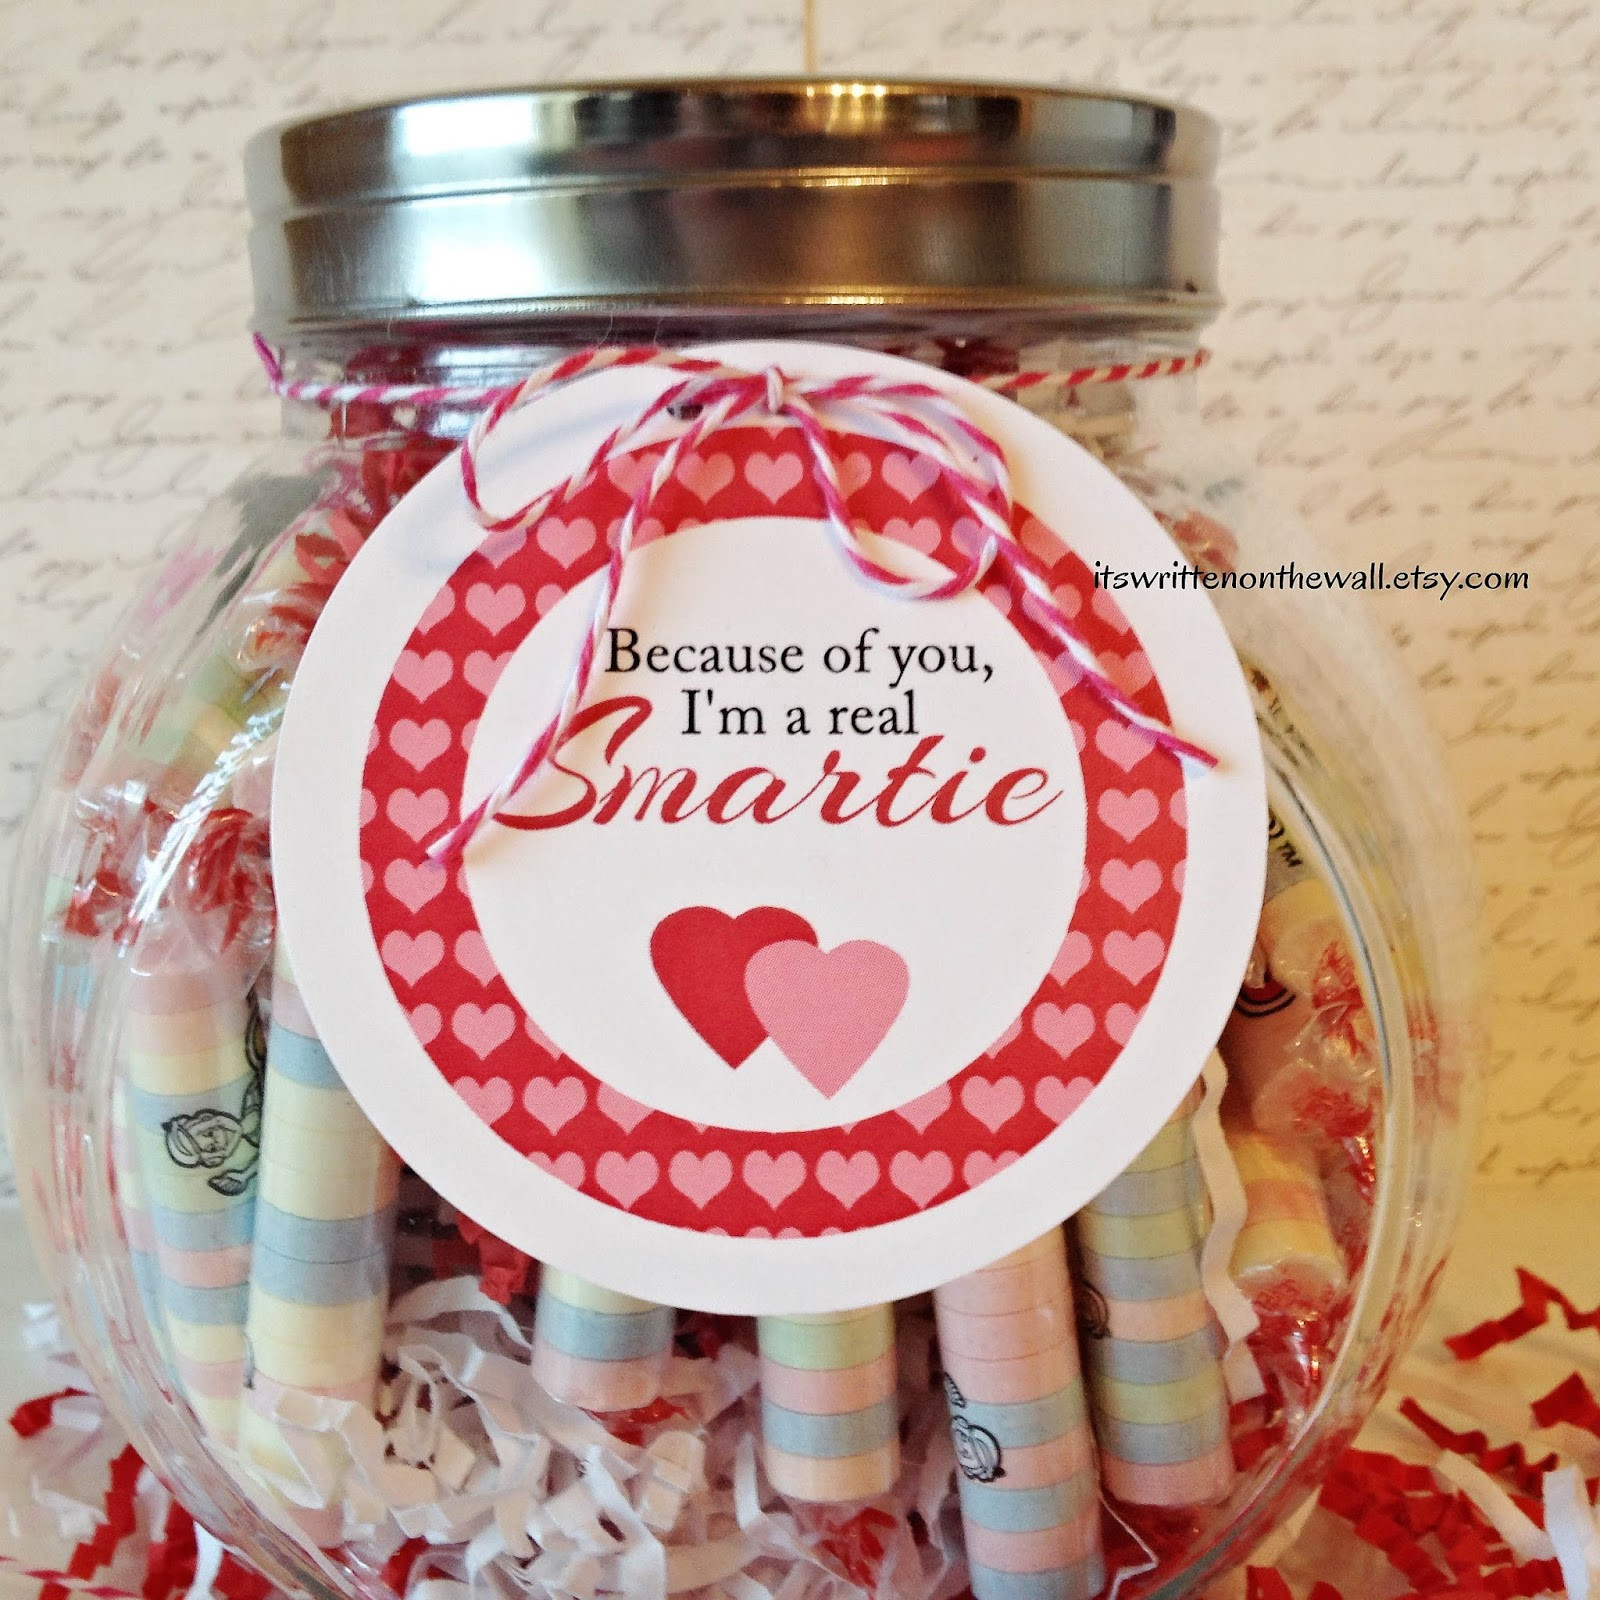 """Valentines Gift Ideas For Teachers  It s Written on the Wall """"Because of you I m a Smartie"""